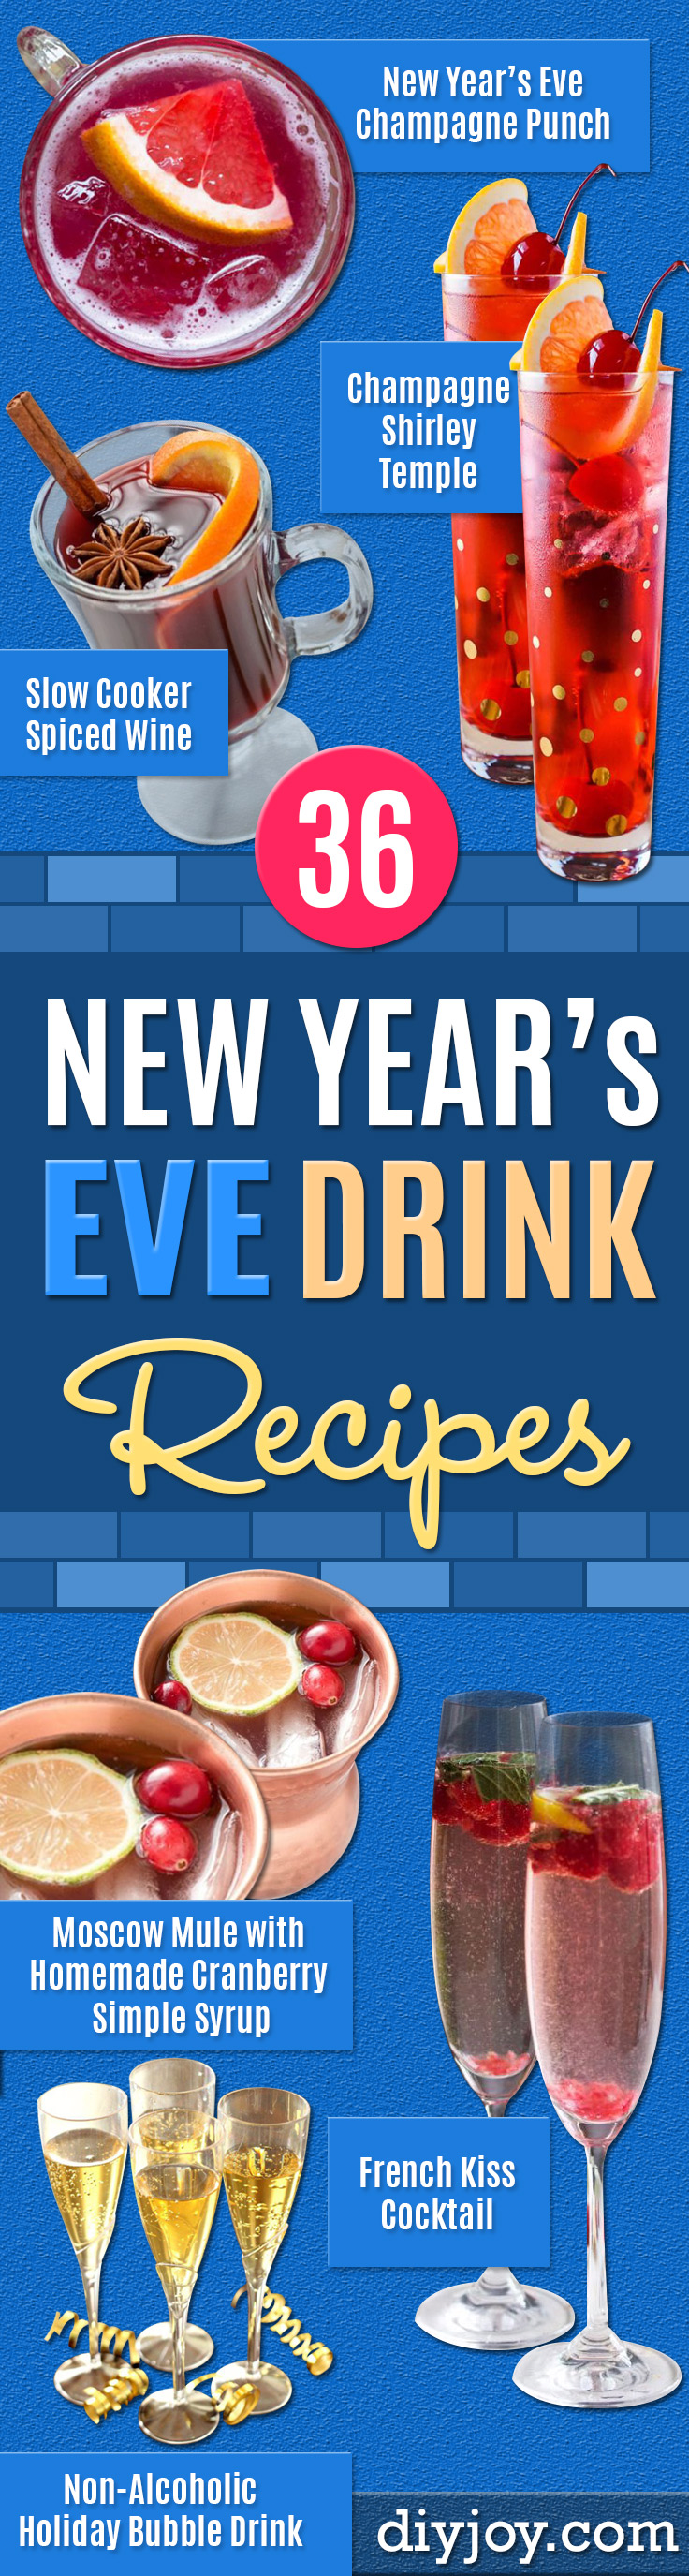 Best Drink Recipes for New Years Eve - Creative Cocktails, Drinks, Champagne Toasts, and Punch Mixes for A New Year's Eve Party - Ideas for Serving, Glasses, Fun Ideas for Shots and Cocktails - Easy Vodka Recipes, Non Alcoholic, Whisky Rum and Party Punches